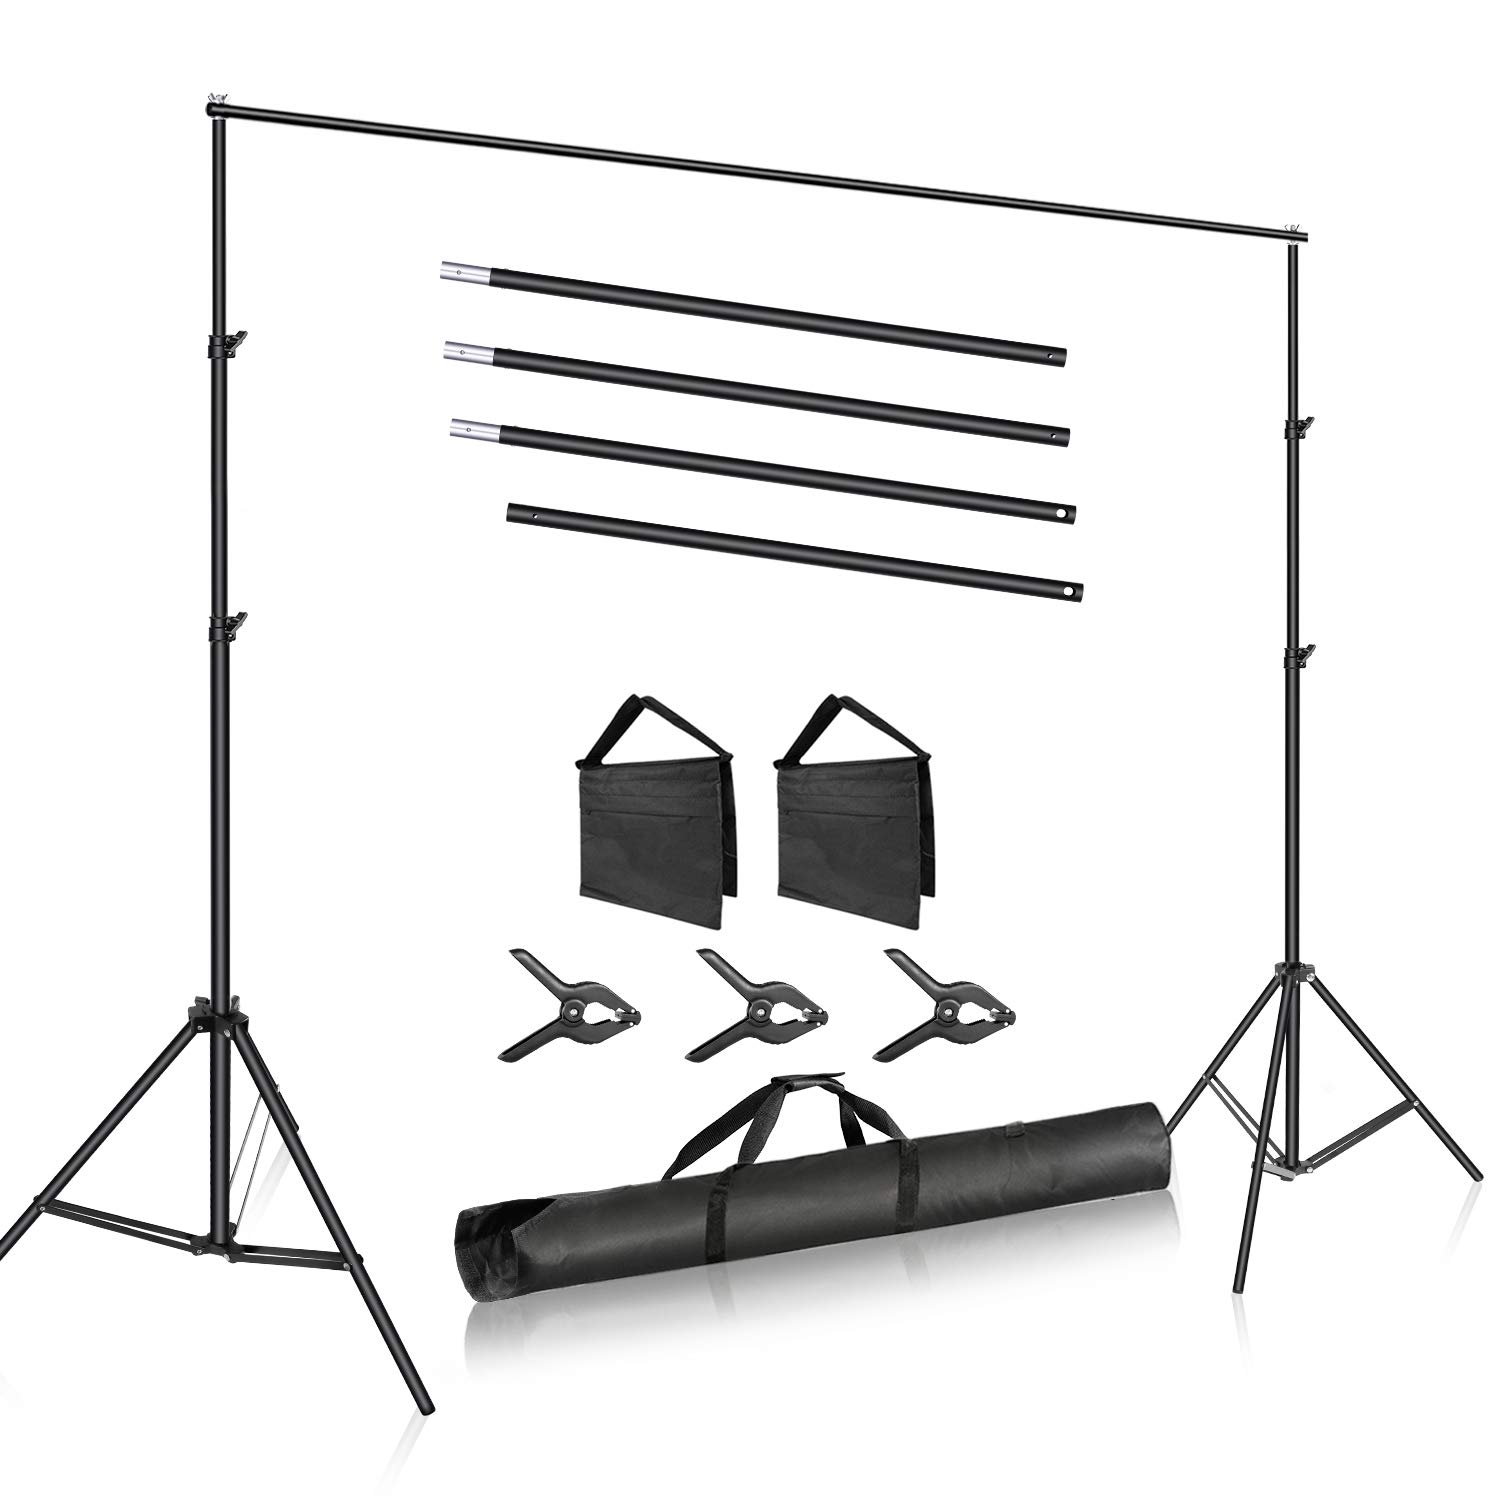 Neewer Photo Studio 10ft/3m Wide Cross Bar 6.6ft/2m Tall Adjustable Background Stand Backdrop Support System with 3 Backdrop Clamps, 2 Sandbags and Carry Bag for Portrait Product Video Photography